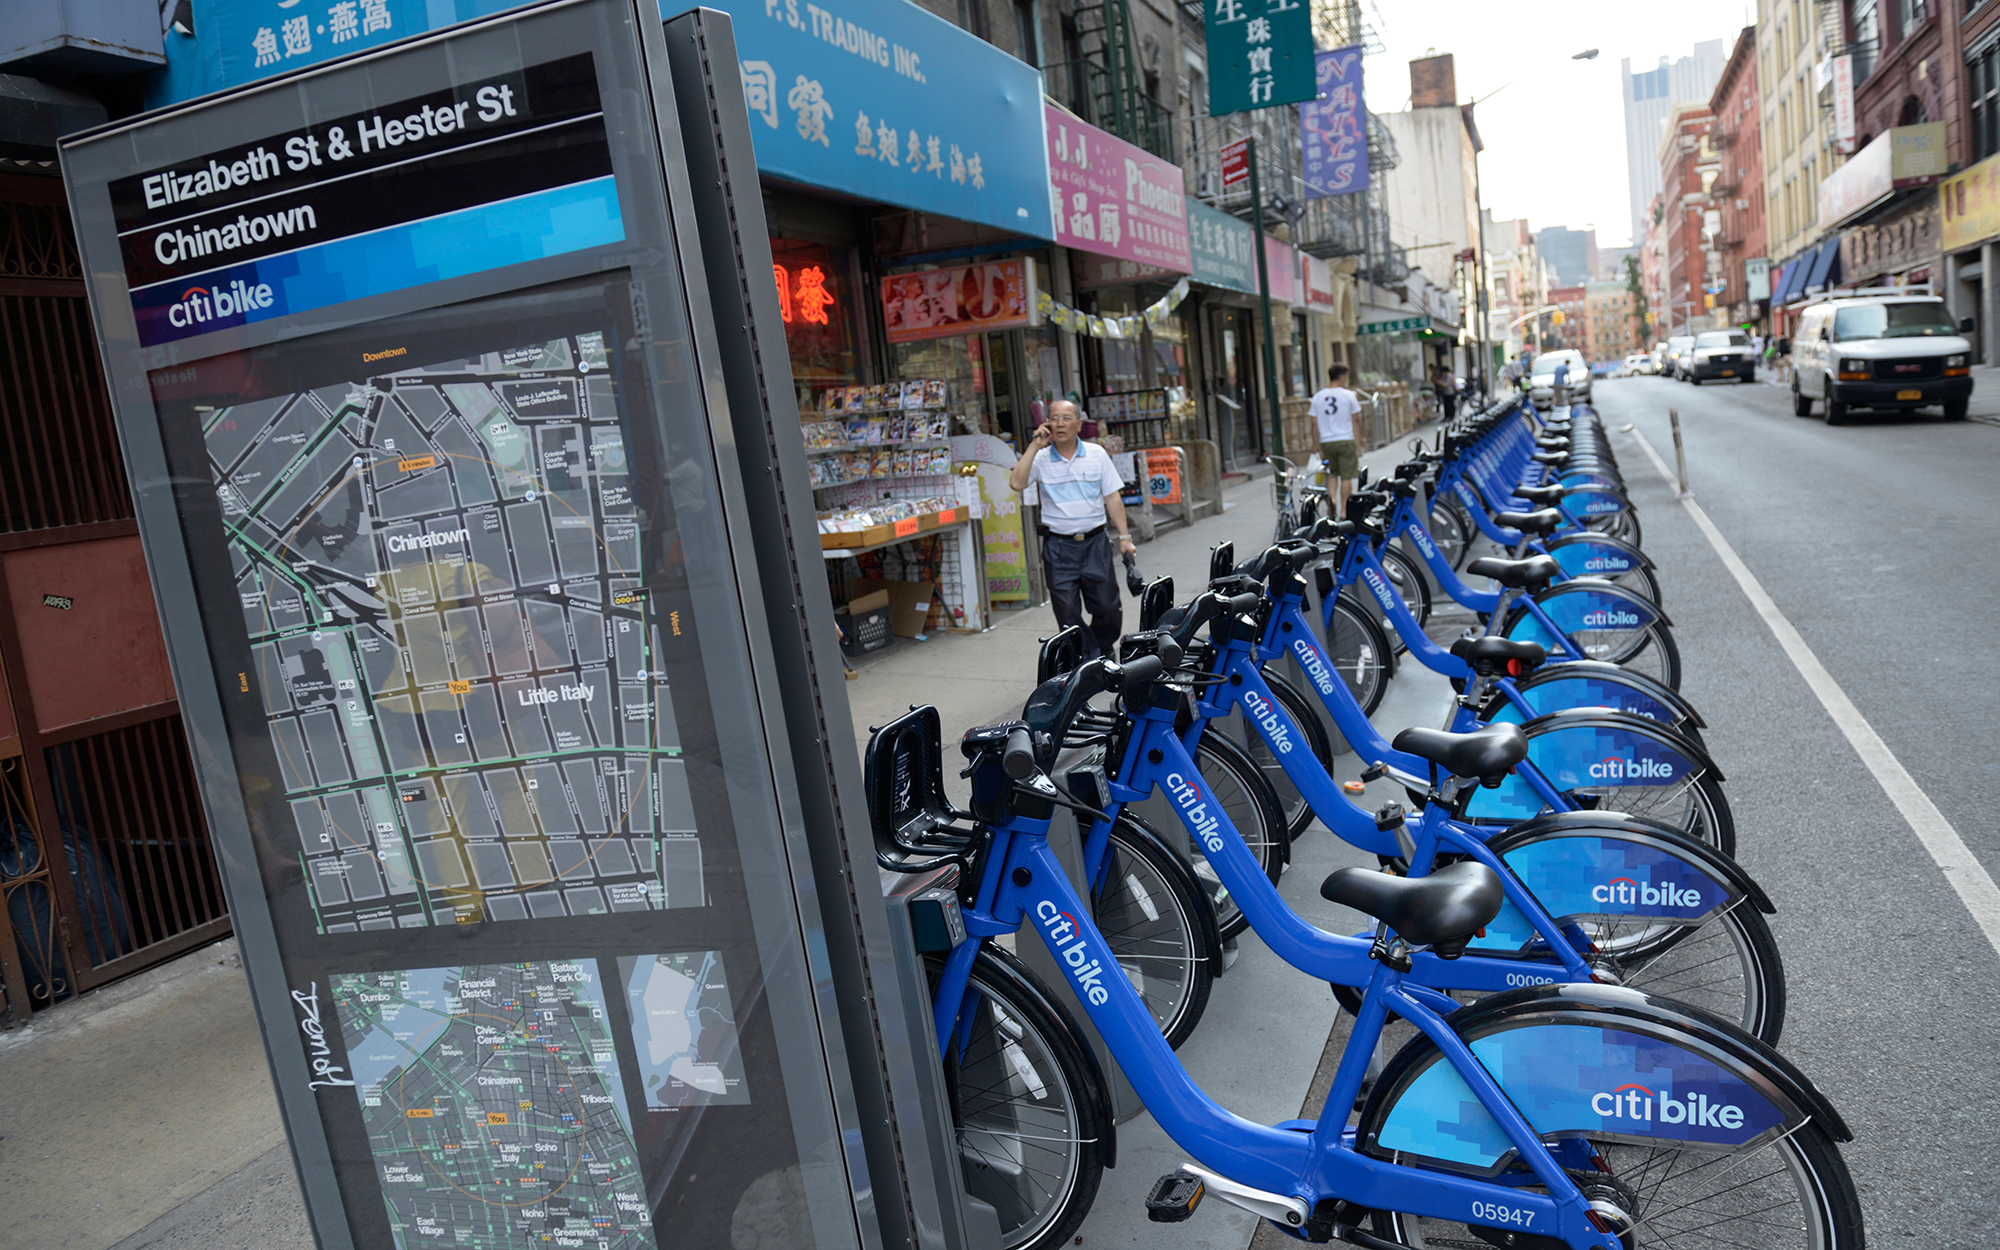 DRH8RK Chinatown Citibike (bike sharing) stand, New York